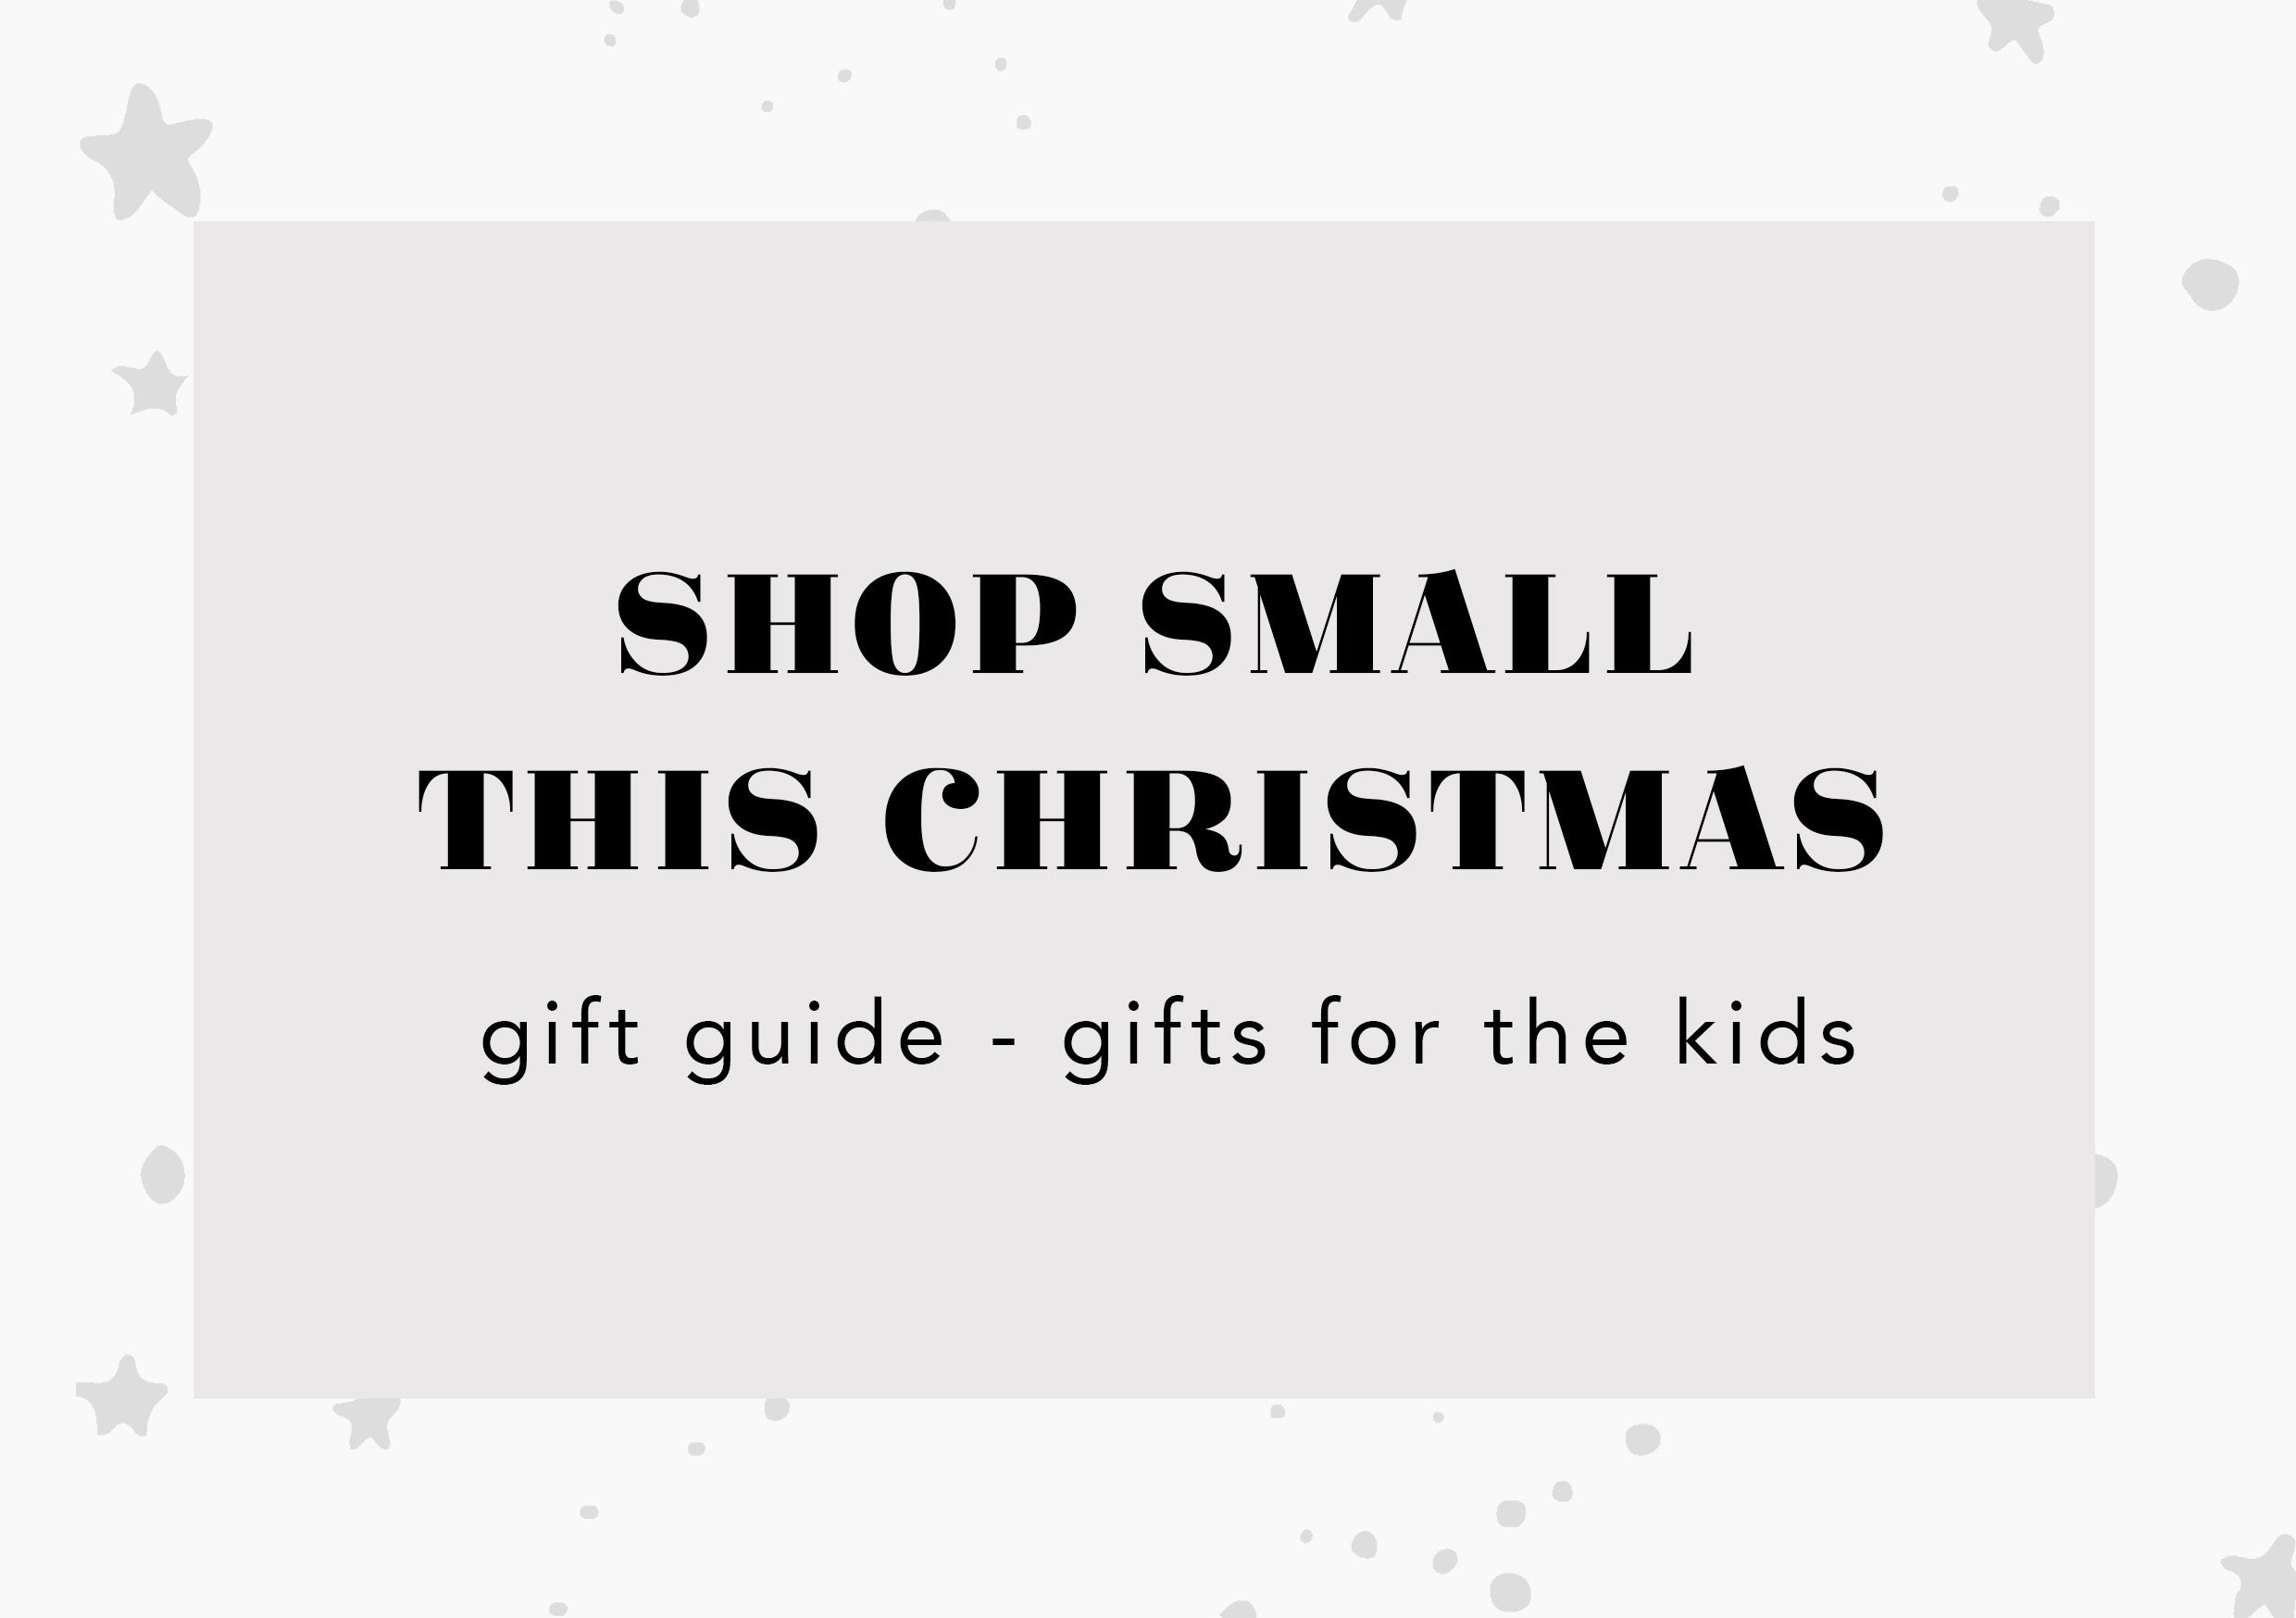 shop small this christmas gift guide - gifts for the kids